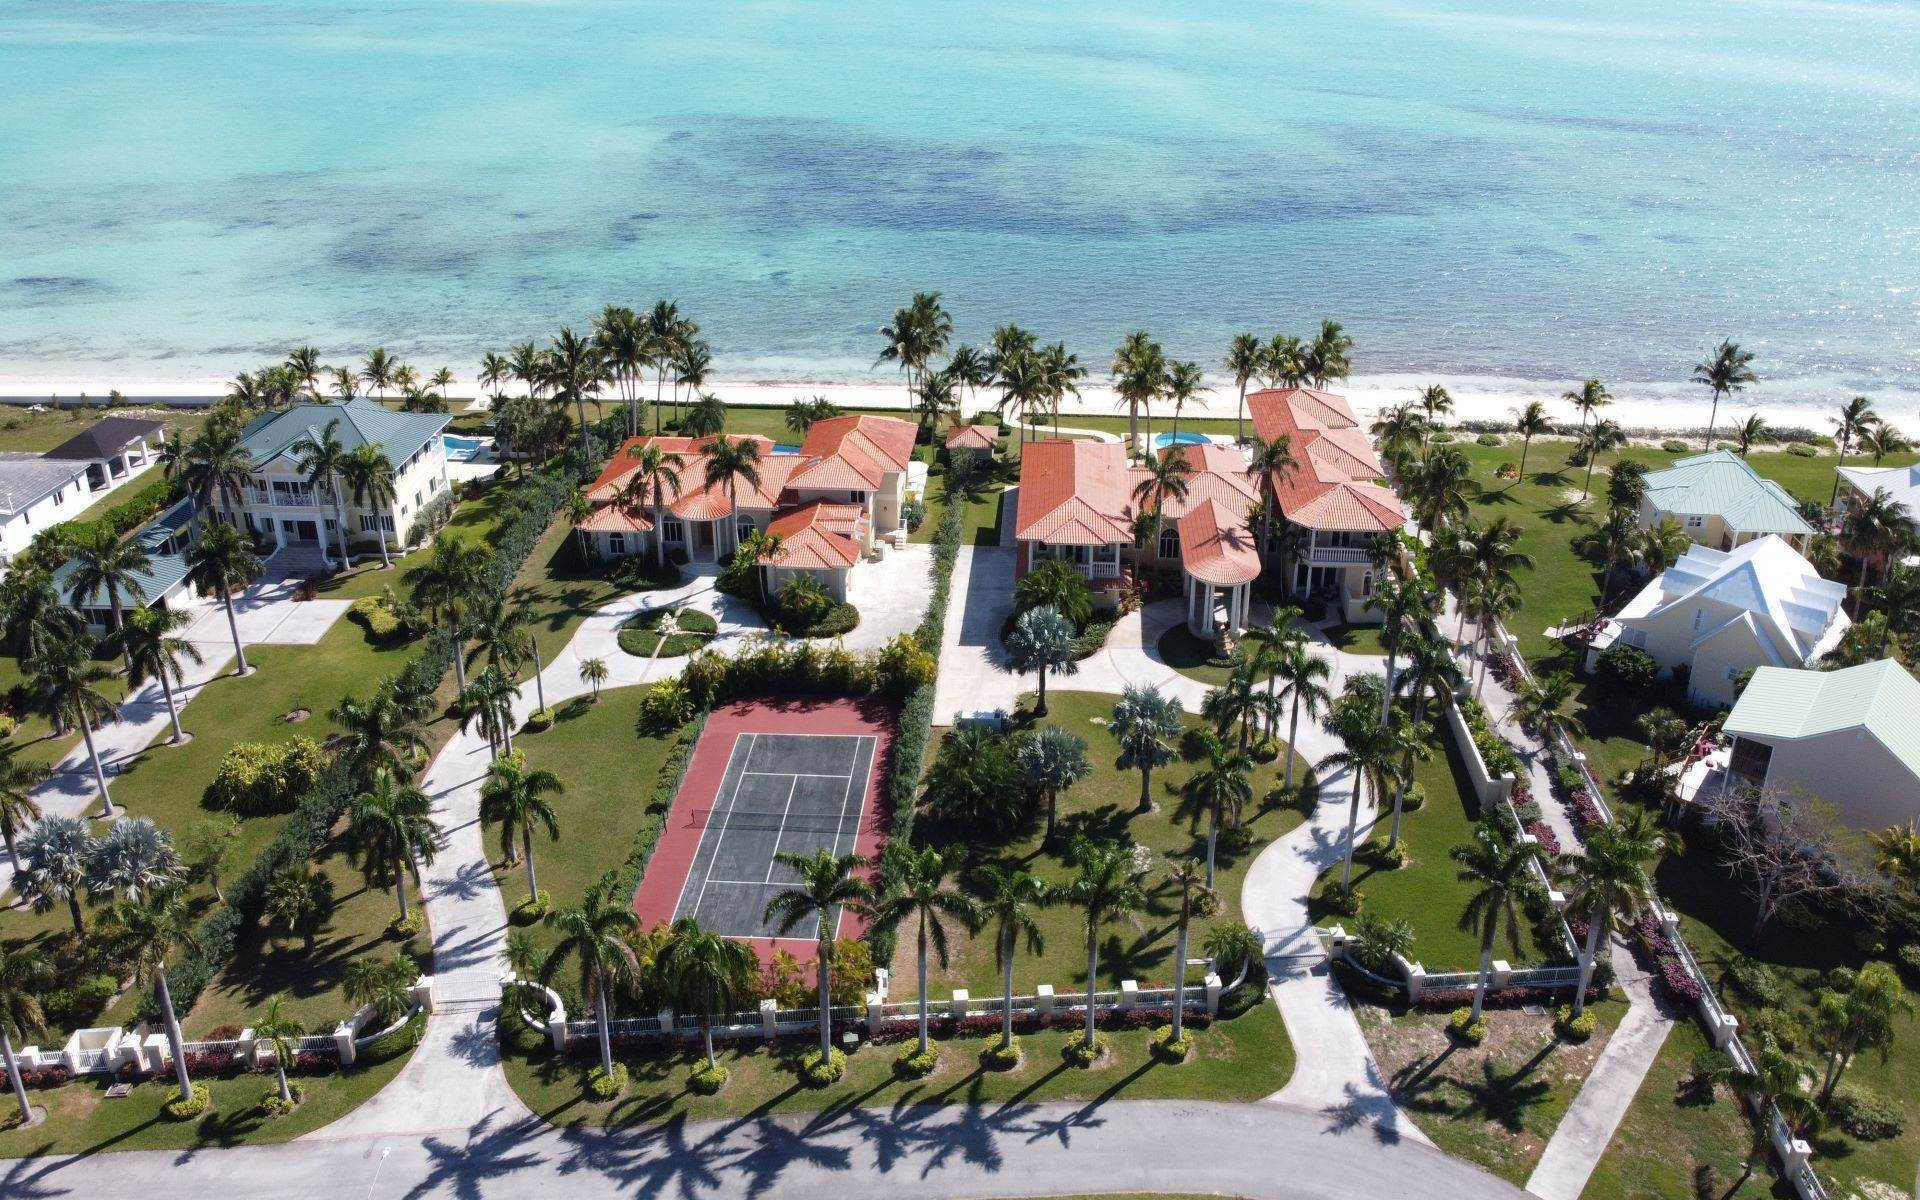 Property en The Grand Estate at Fortune Cay - MLS 44053 Fortune Cay, Gran Bahama Freeport, Bahamas